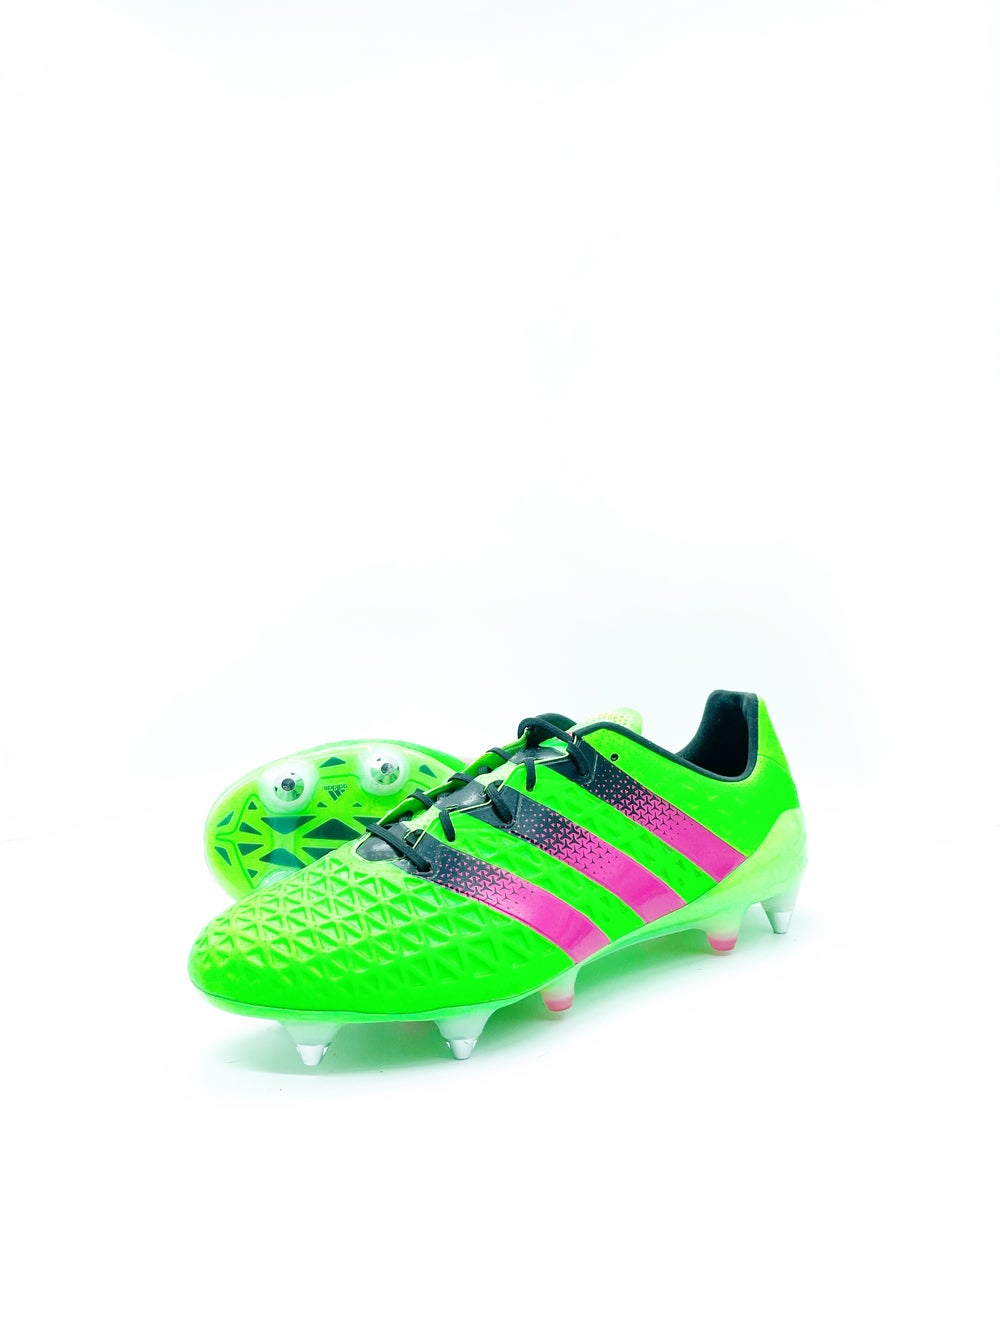 Image of Adidas 16.1 ACE green sg or FG